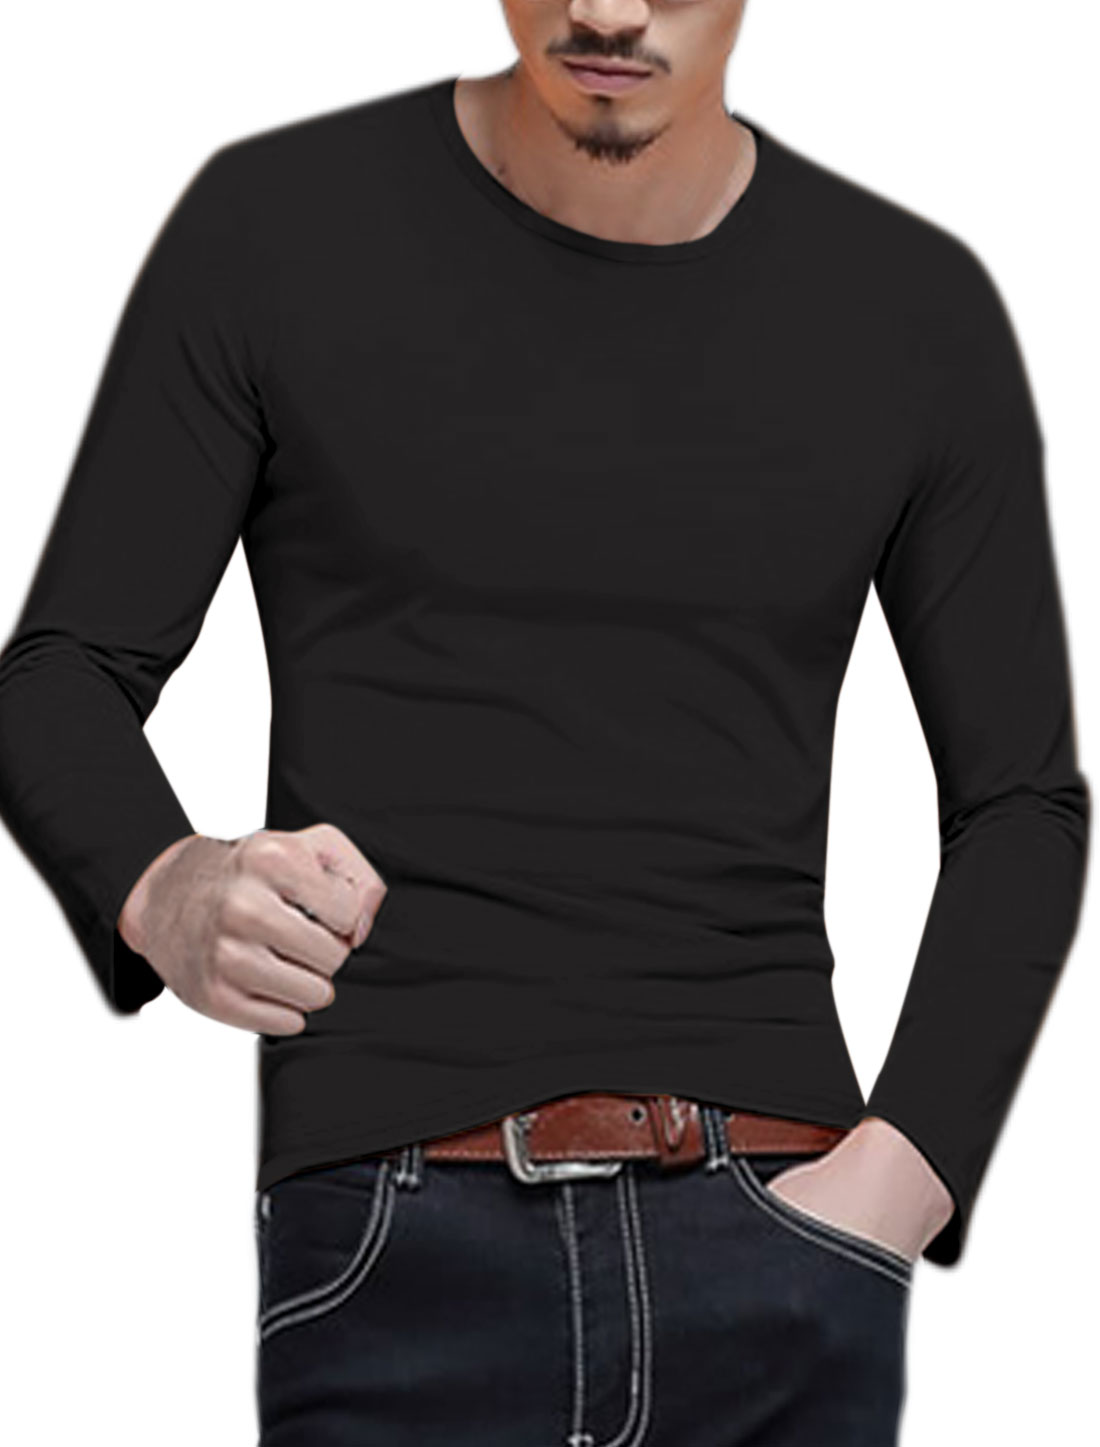 Man Long Sleeves Crew Neck Slim Fit T-Shirt Black M